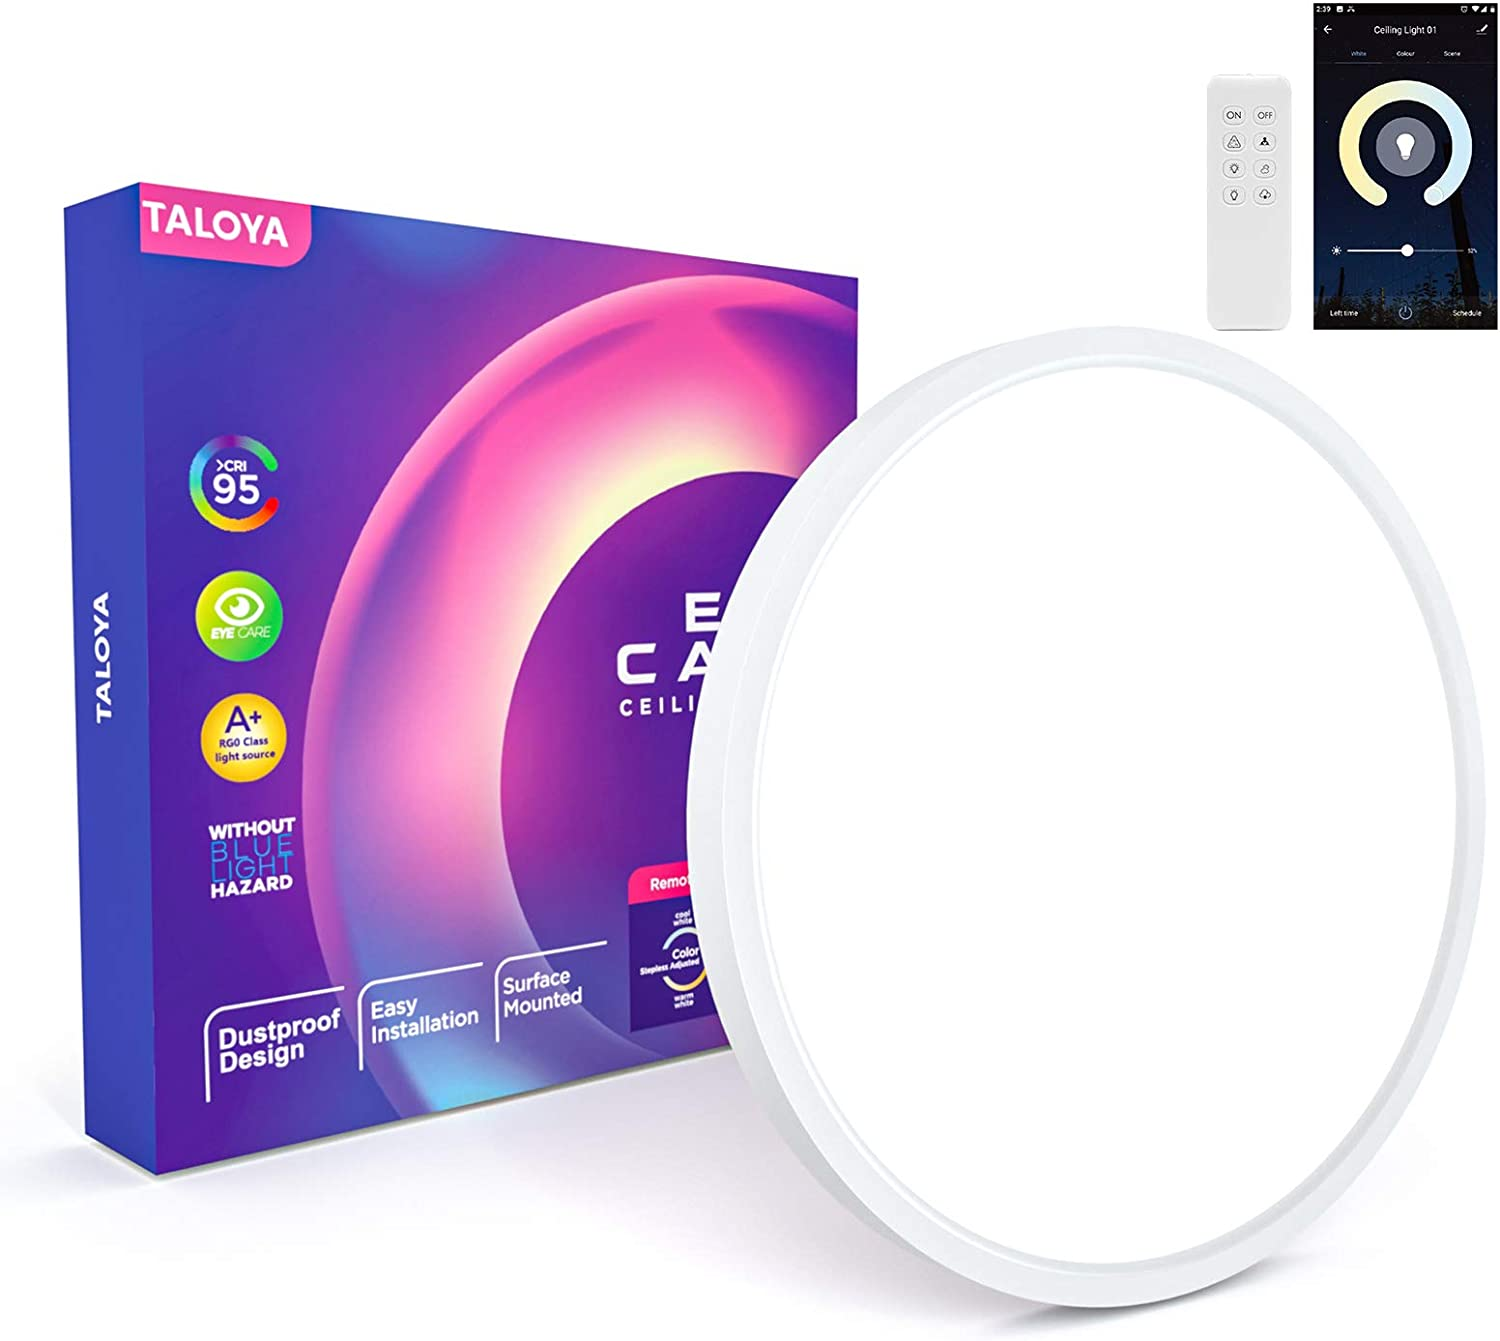 Taloya Smart WiFi Ceiling Light (12 inch-20W), Compatible with Alexa,Google,Remote Controller. Full Color Temperature Fixture for Bedroom Living Room